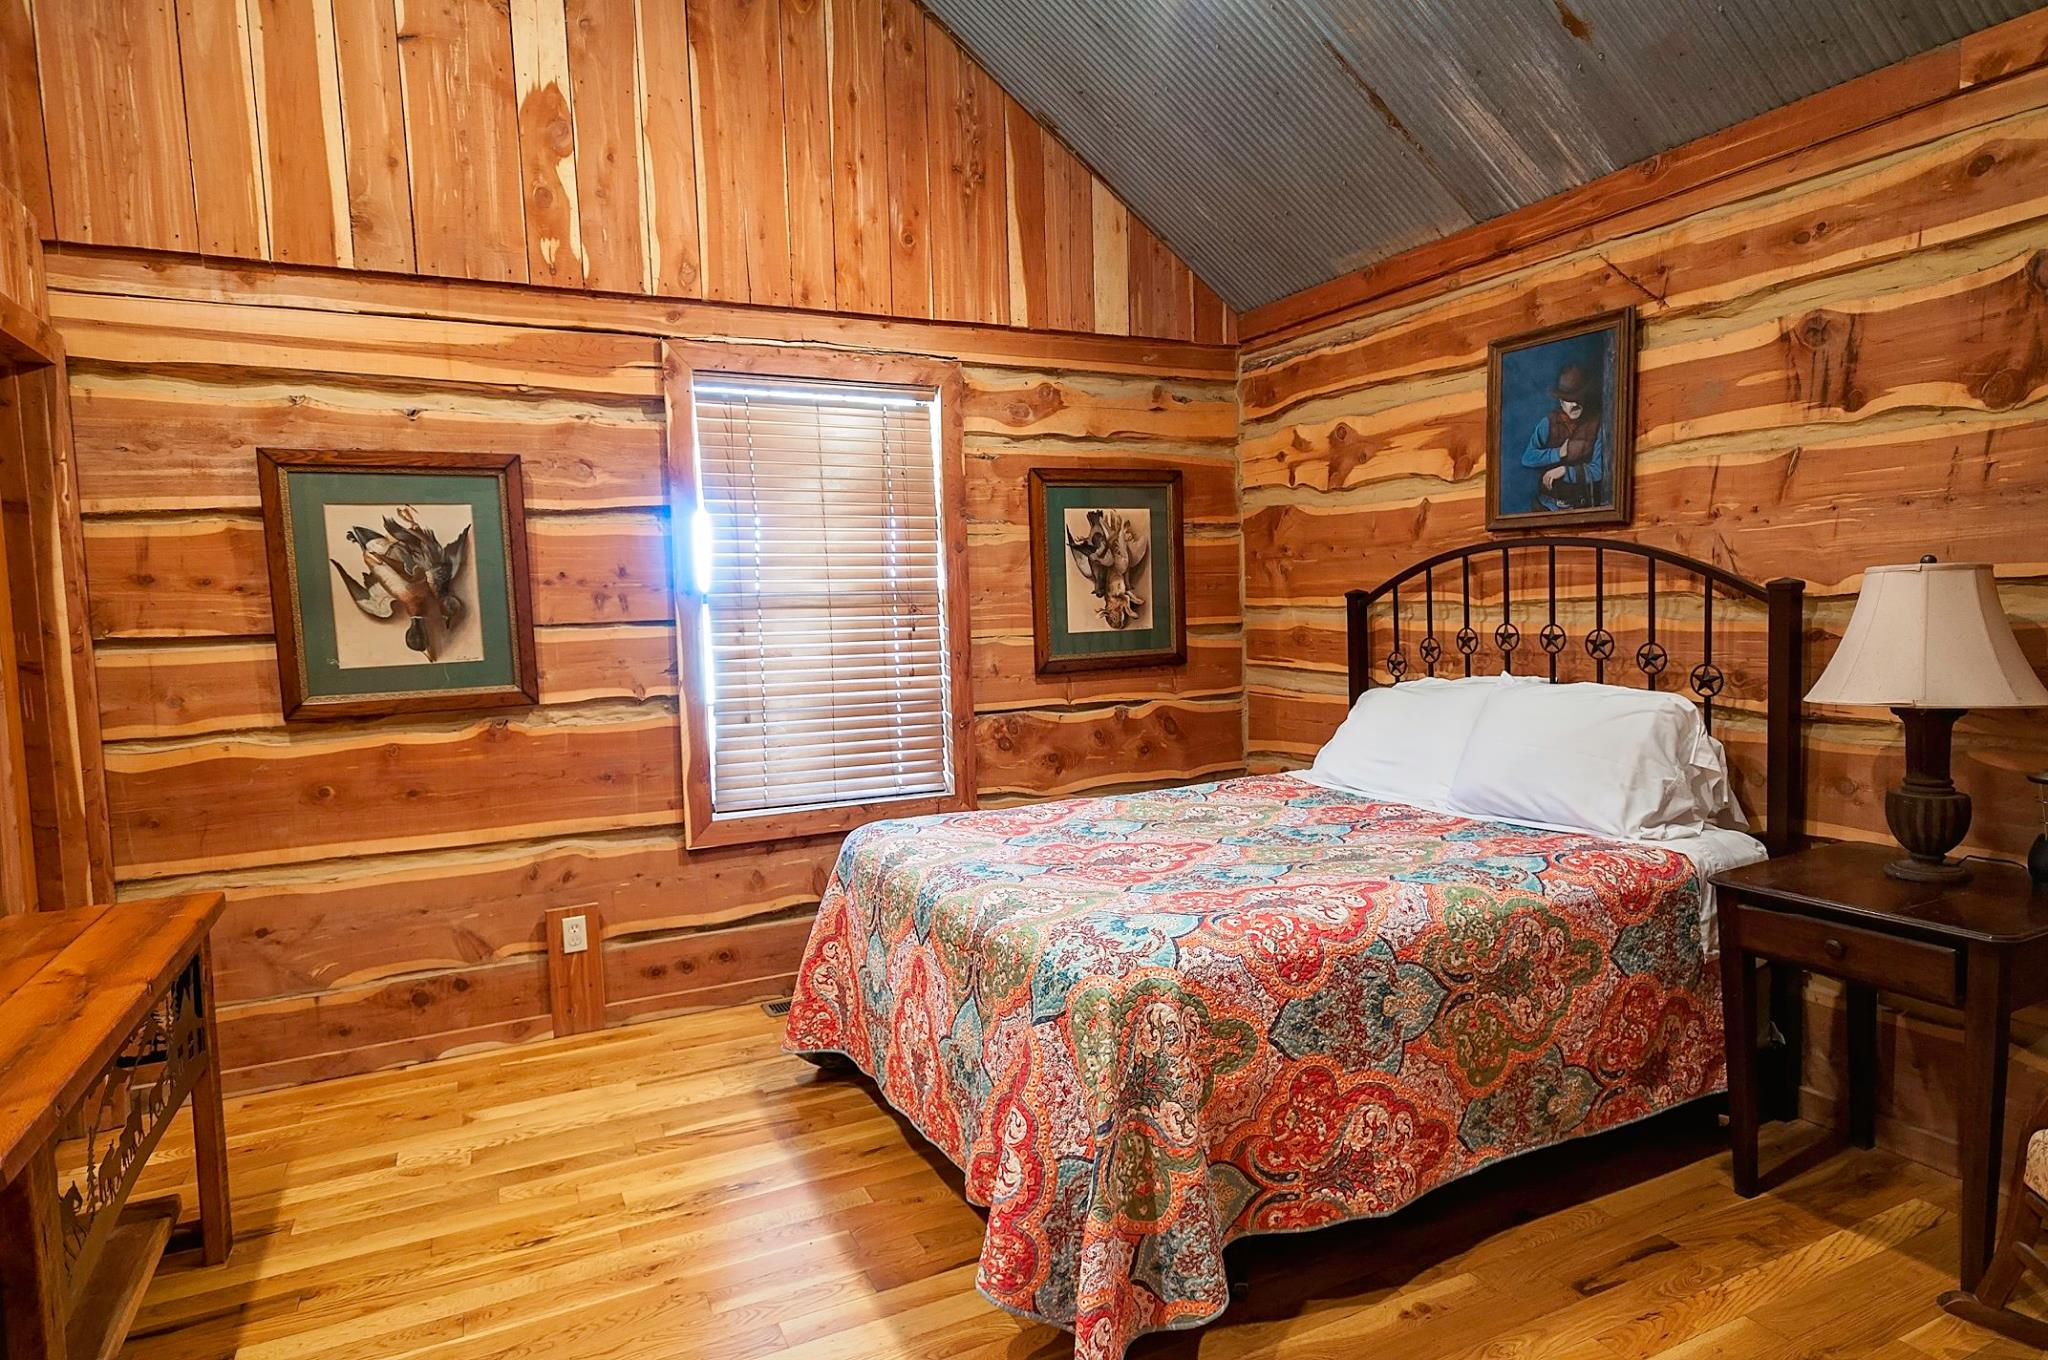 Relax in rustic luxury after lots of outdoor recreation.  You can fish, hunt, go four-wheeling, hike and explore all day without leaving the PRIVACY of this 315 acre fenced lake rental.